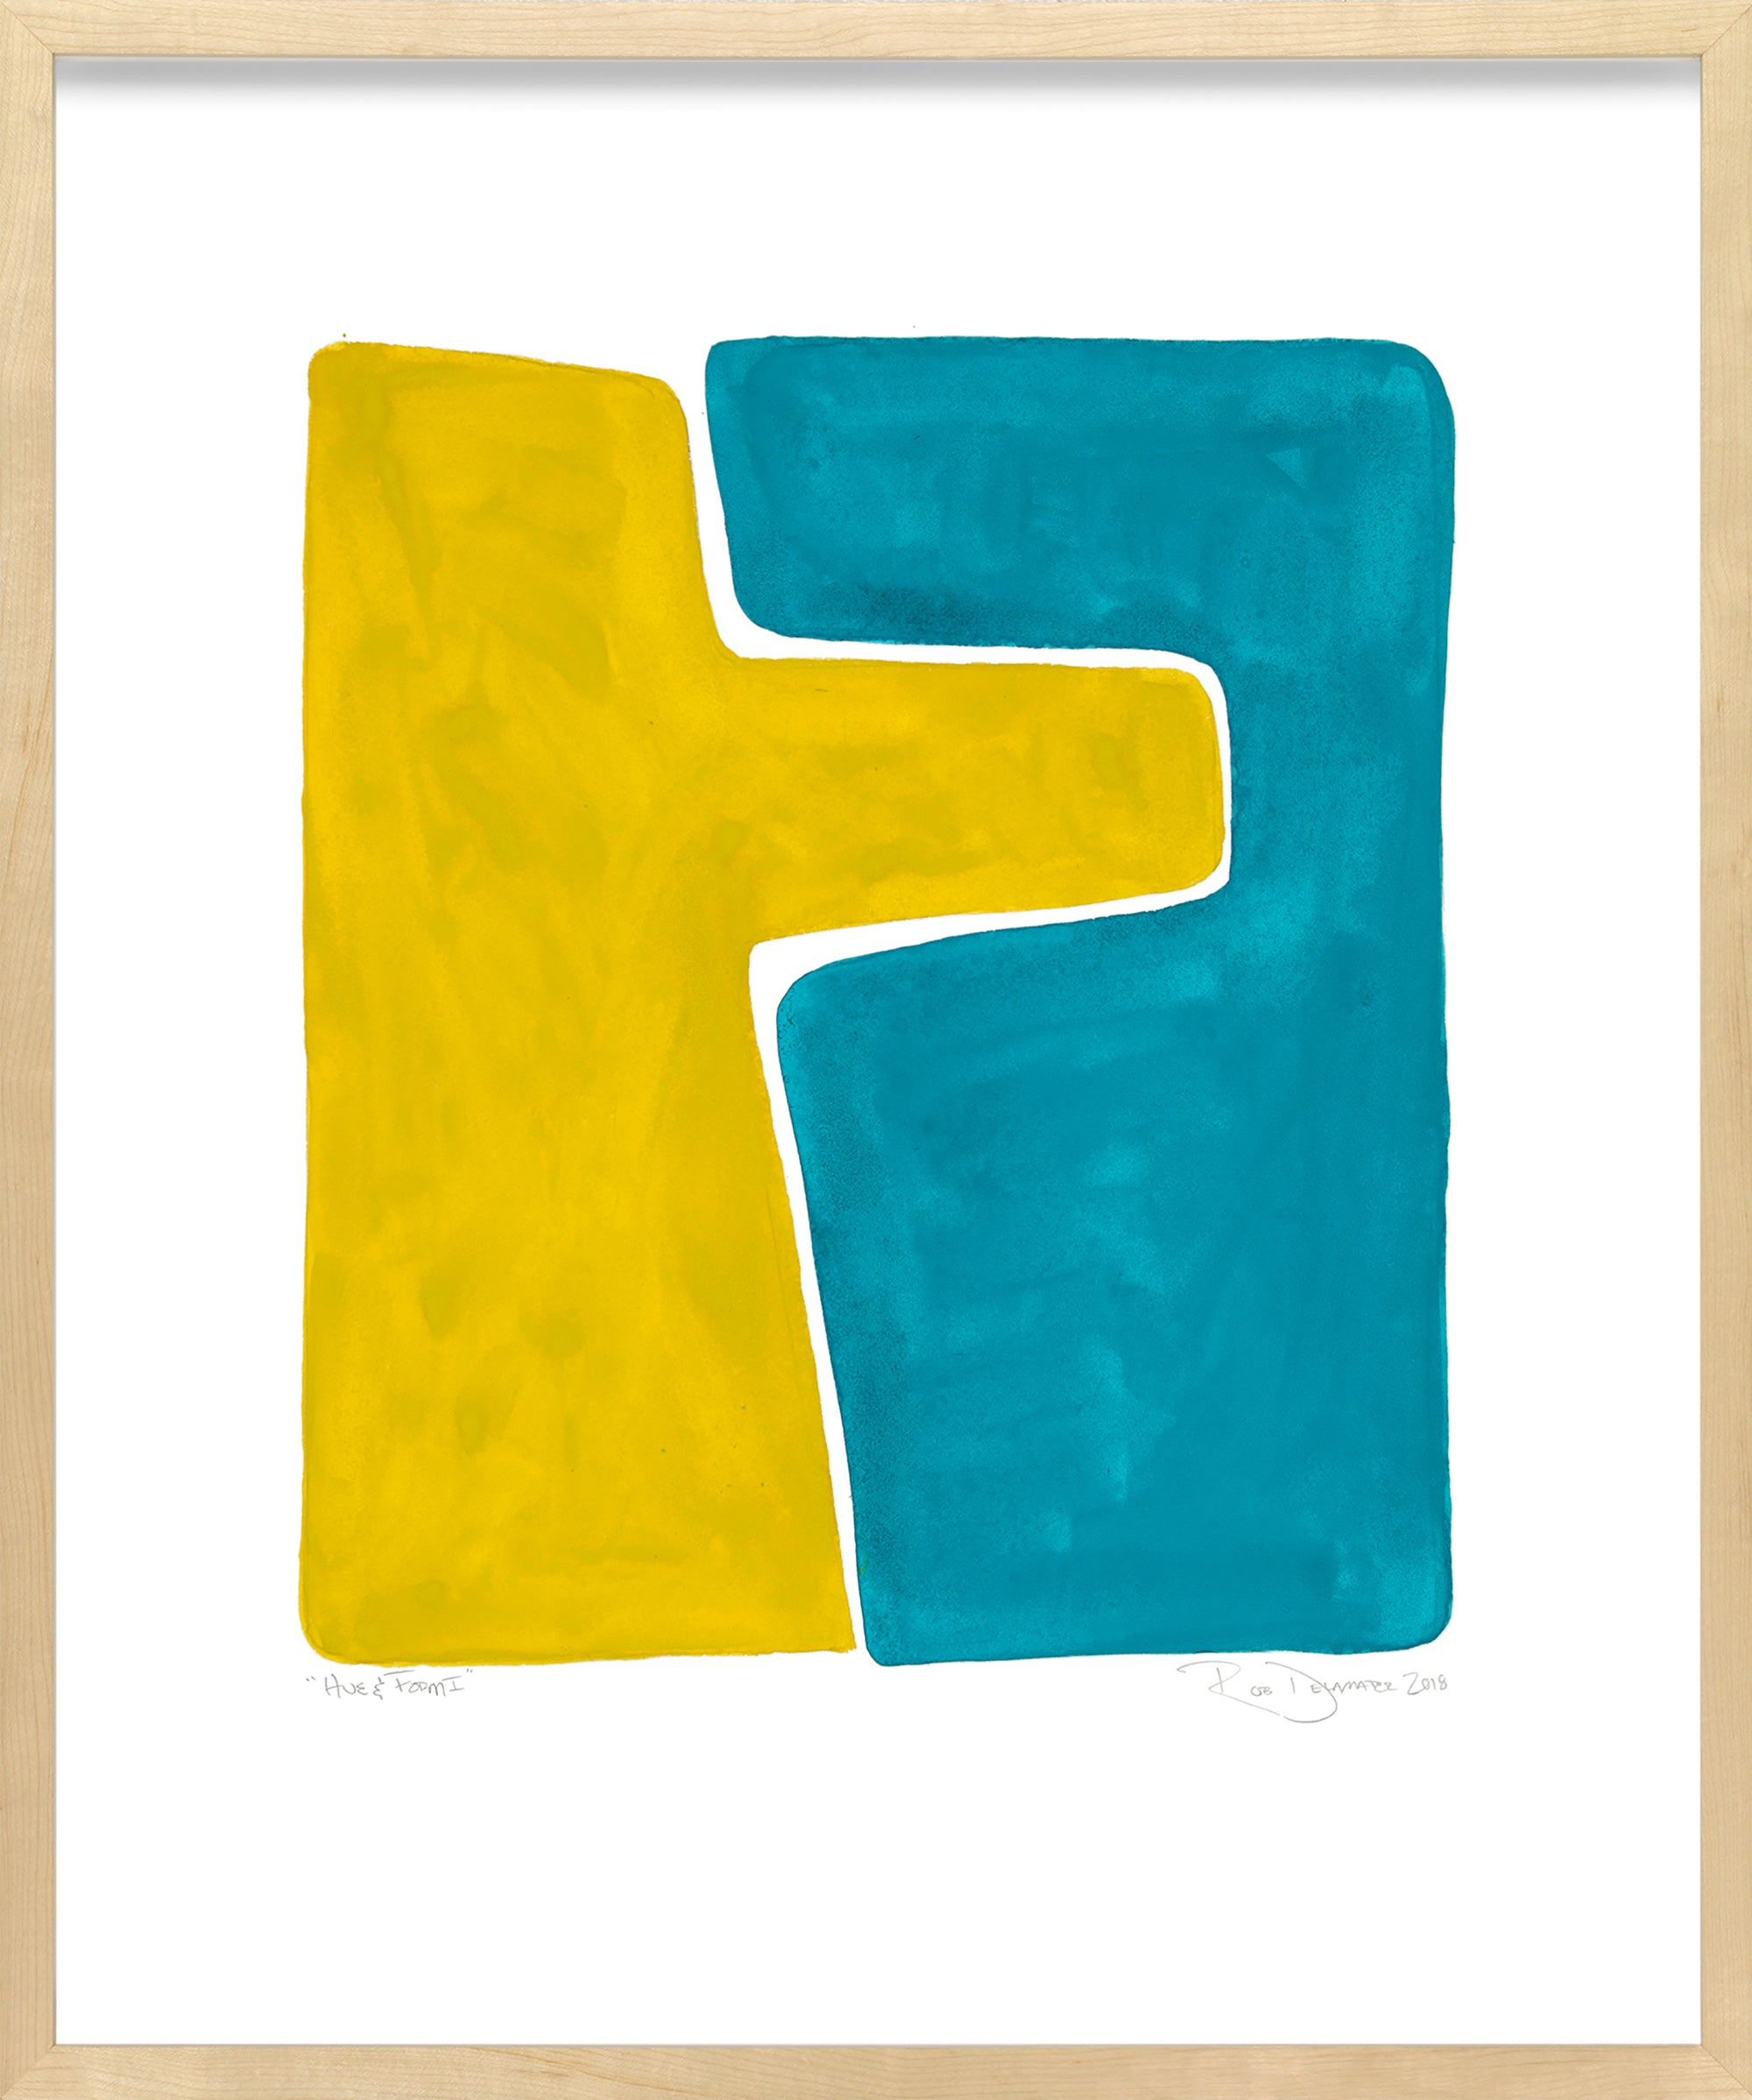 <i>Hue & Form I</i> <br>Limited Edition Archival Print <br><br>ART-13956